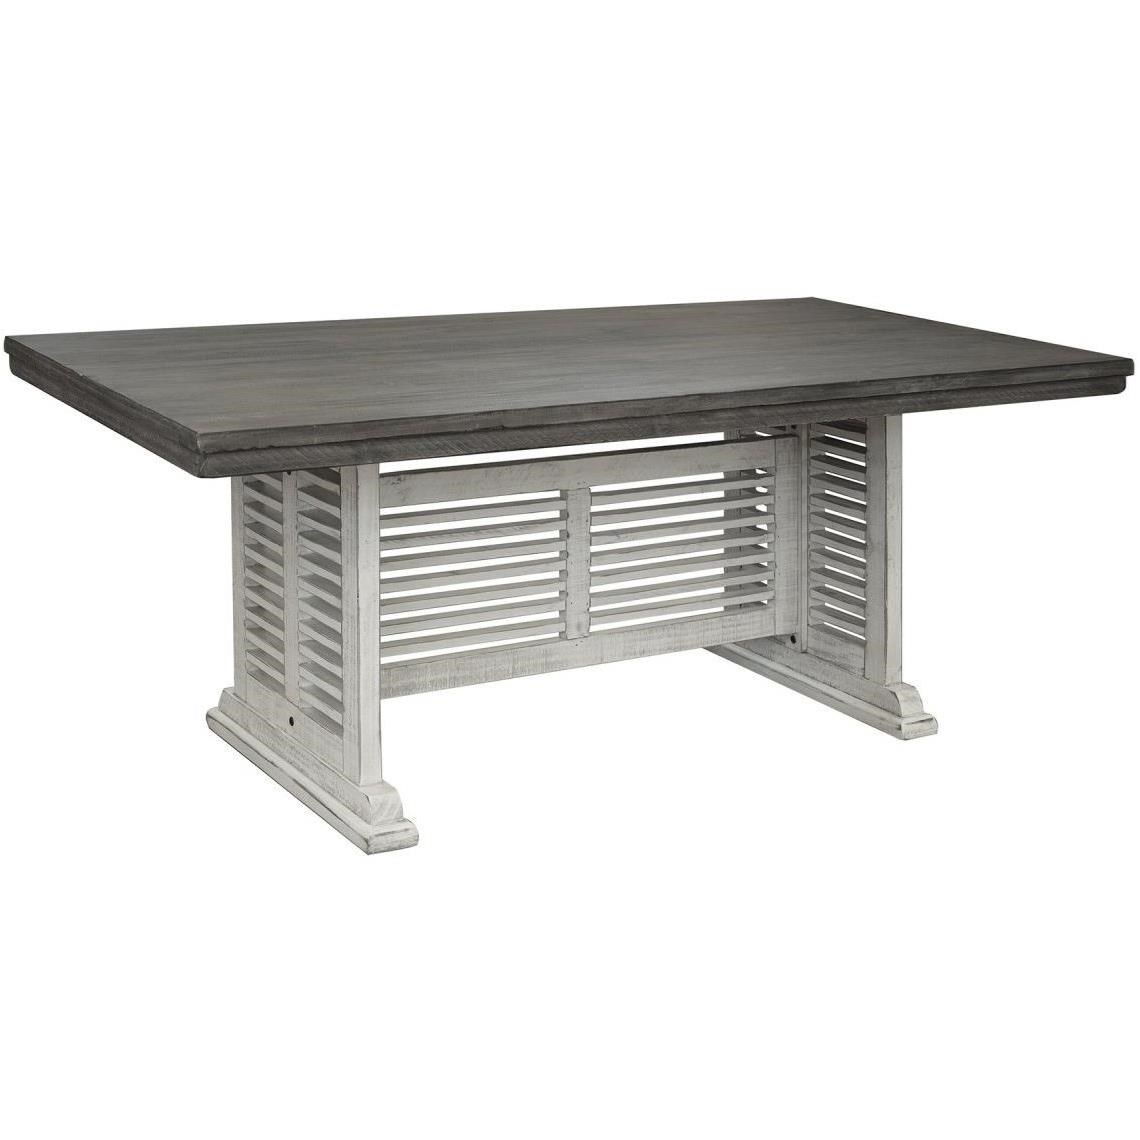 Stone Counter Height Table by International Furniture Direct at Gill Brothers Furniture